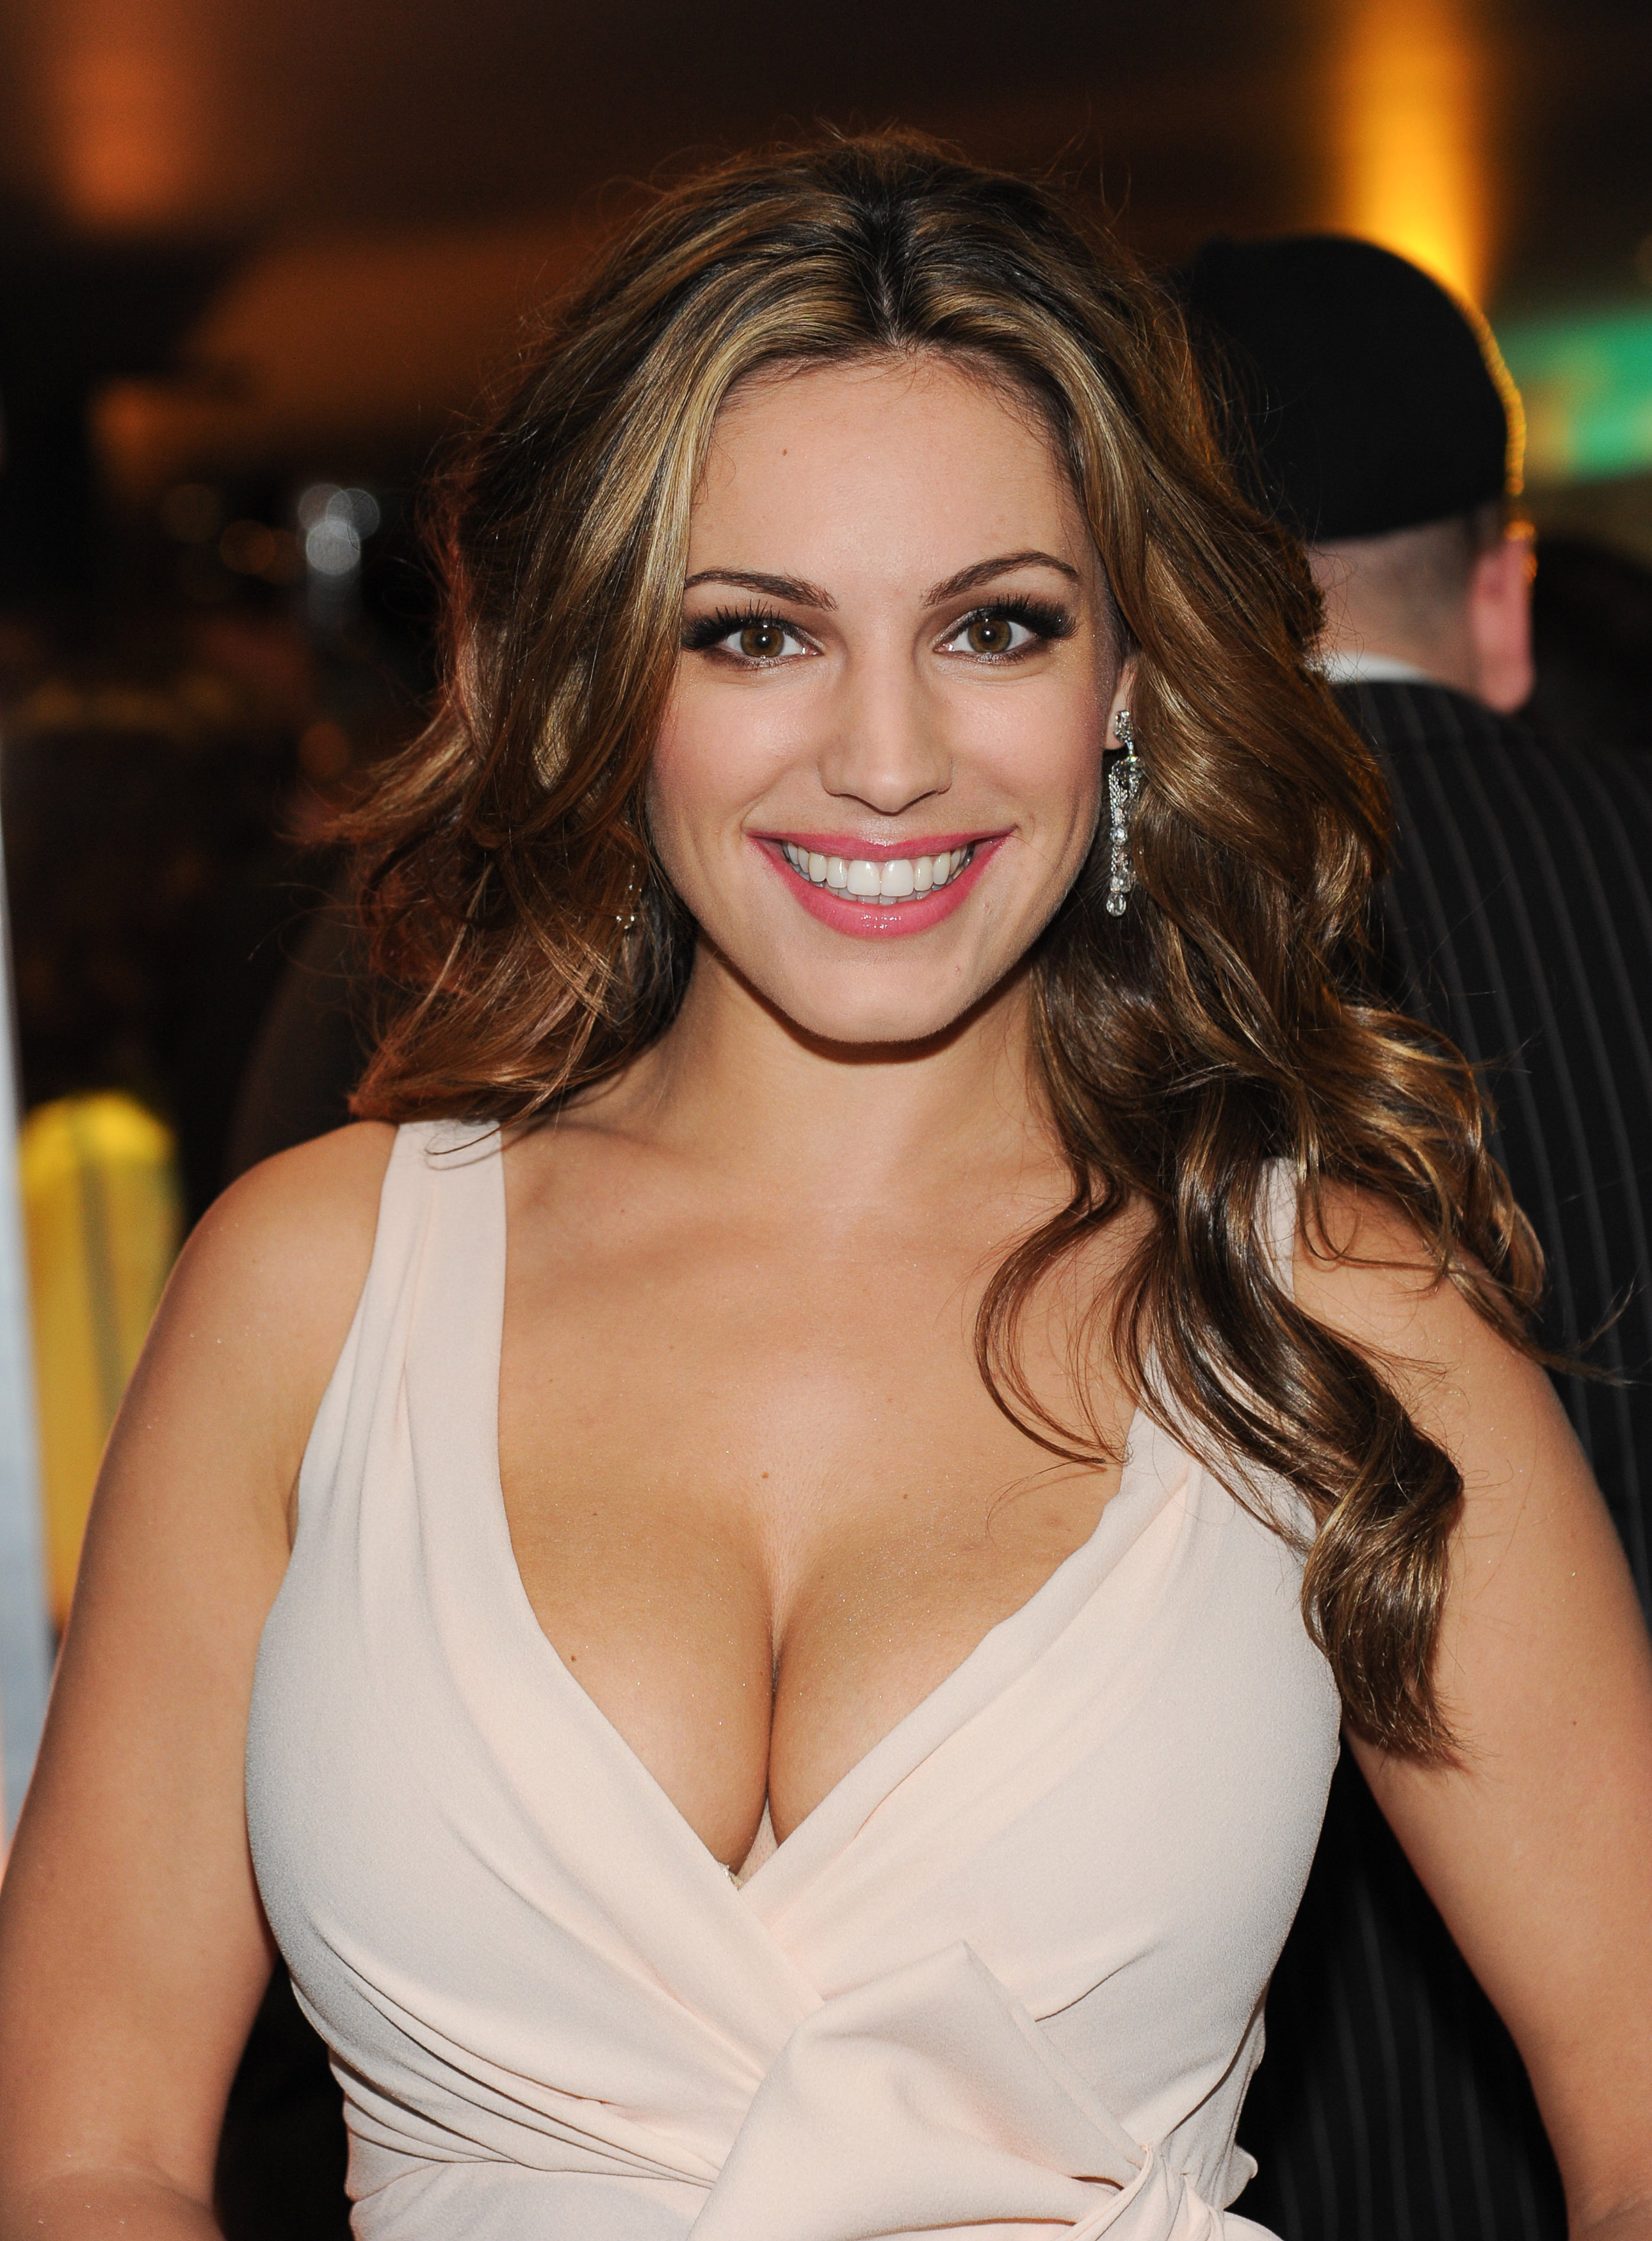 Kelly Brook Iphone Sexy Wallpapers